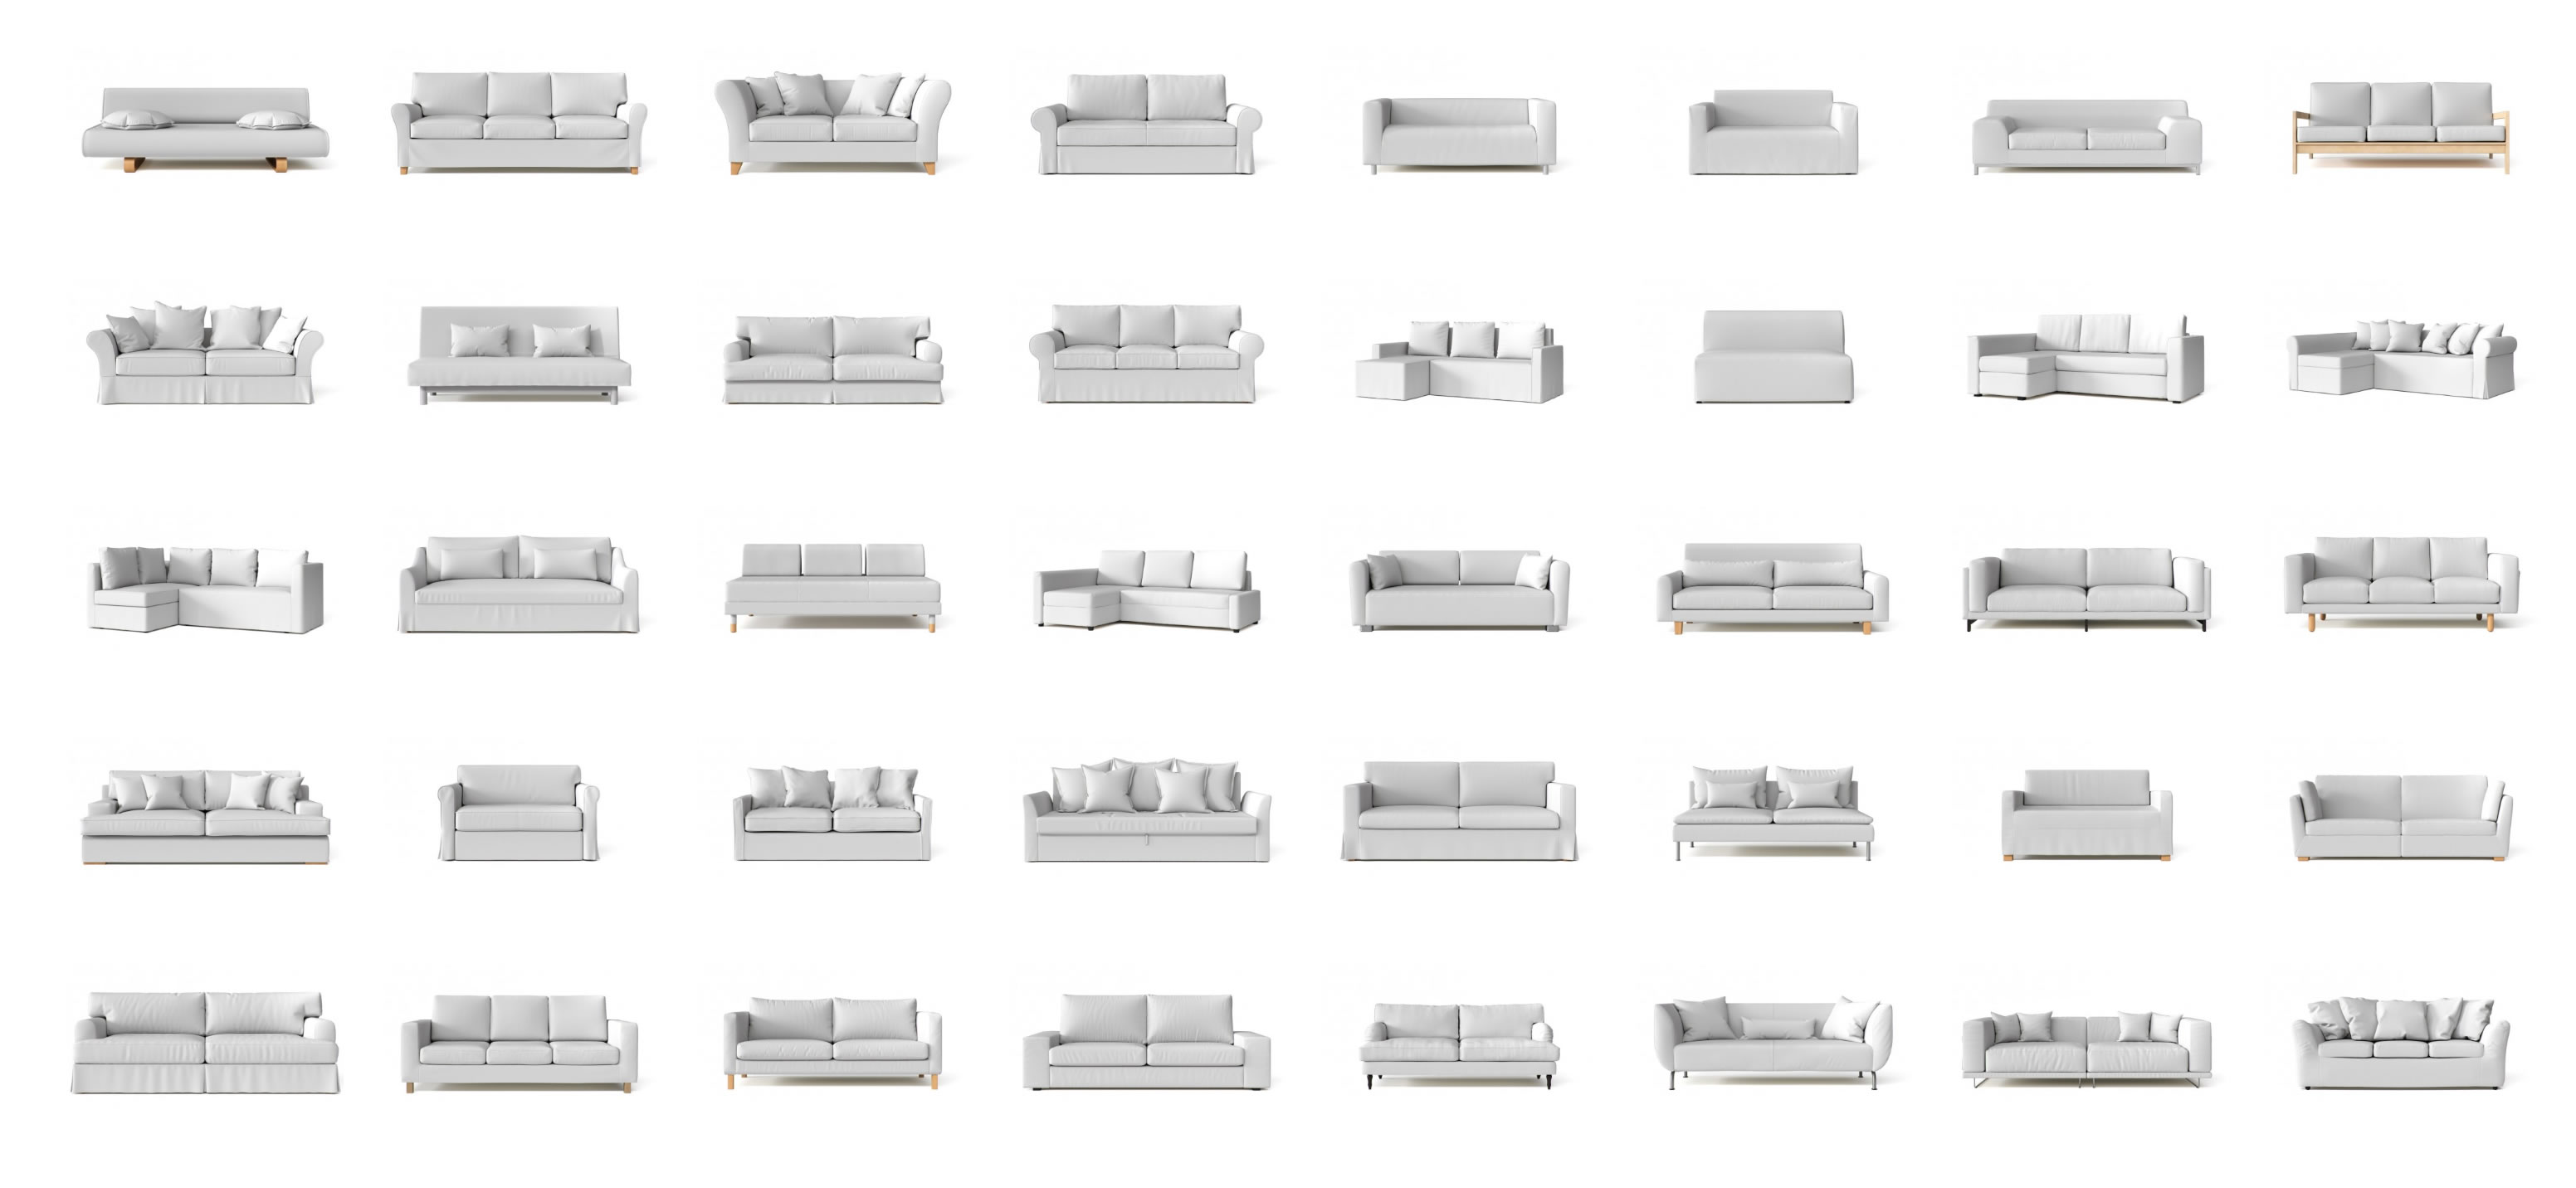 Classic Sofa Style Names 21 Different Types Of Sofas And Slipcoverability What S Mine